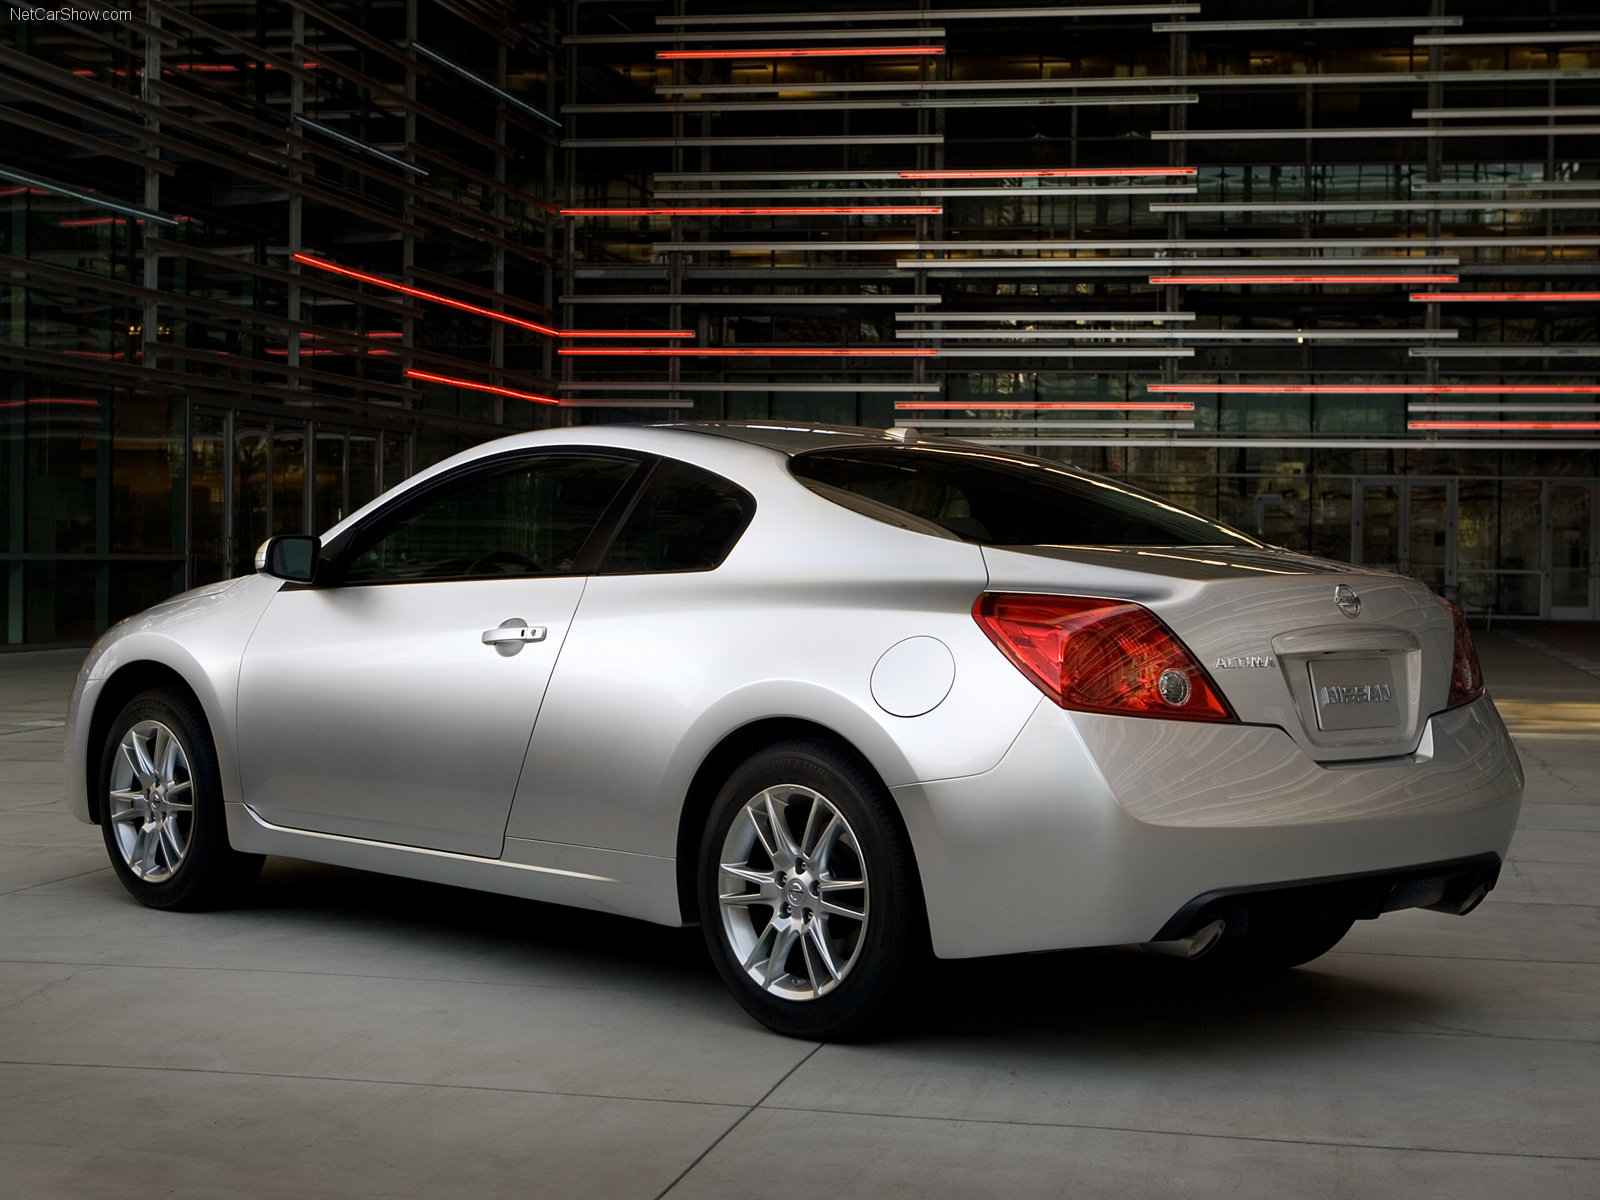 Nissan Altima Coupe photo 39793